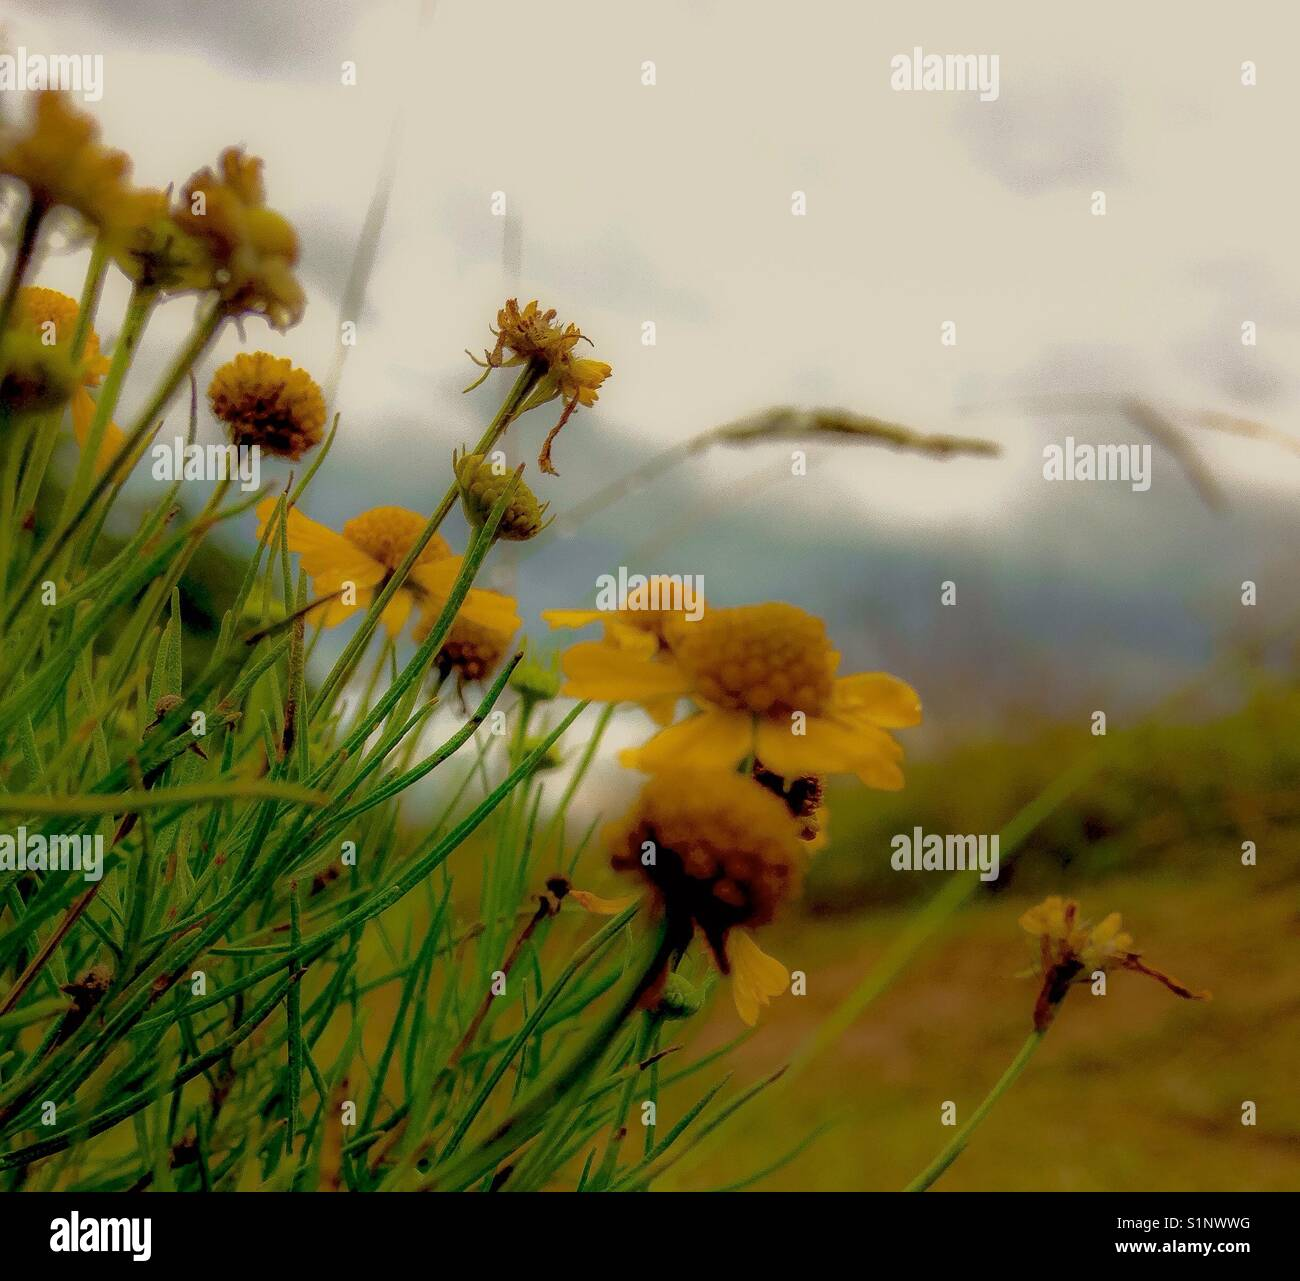 Wistful wildflowers in morning light - Stock Image